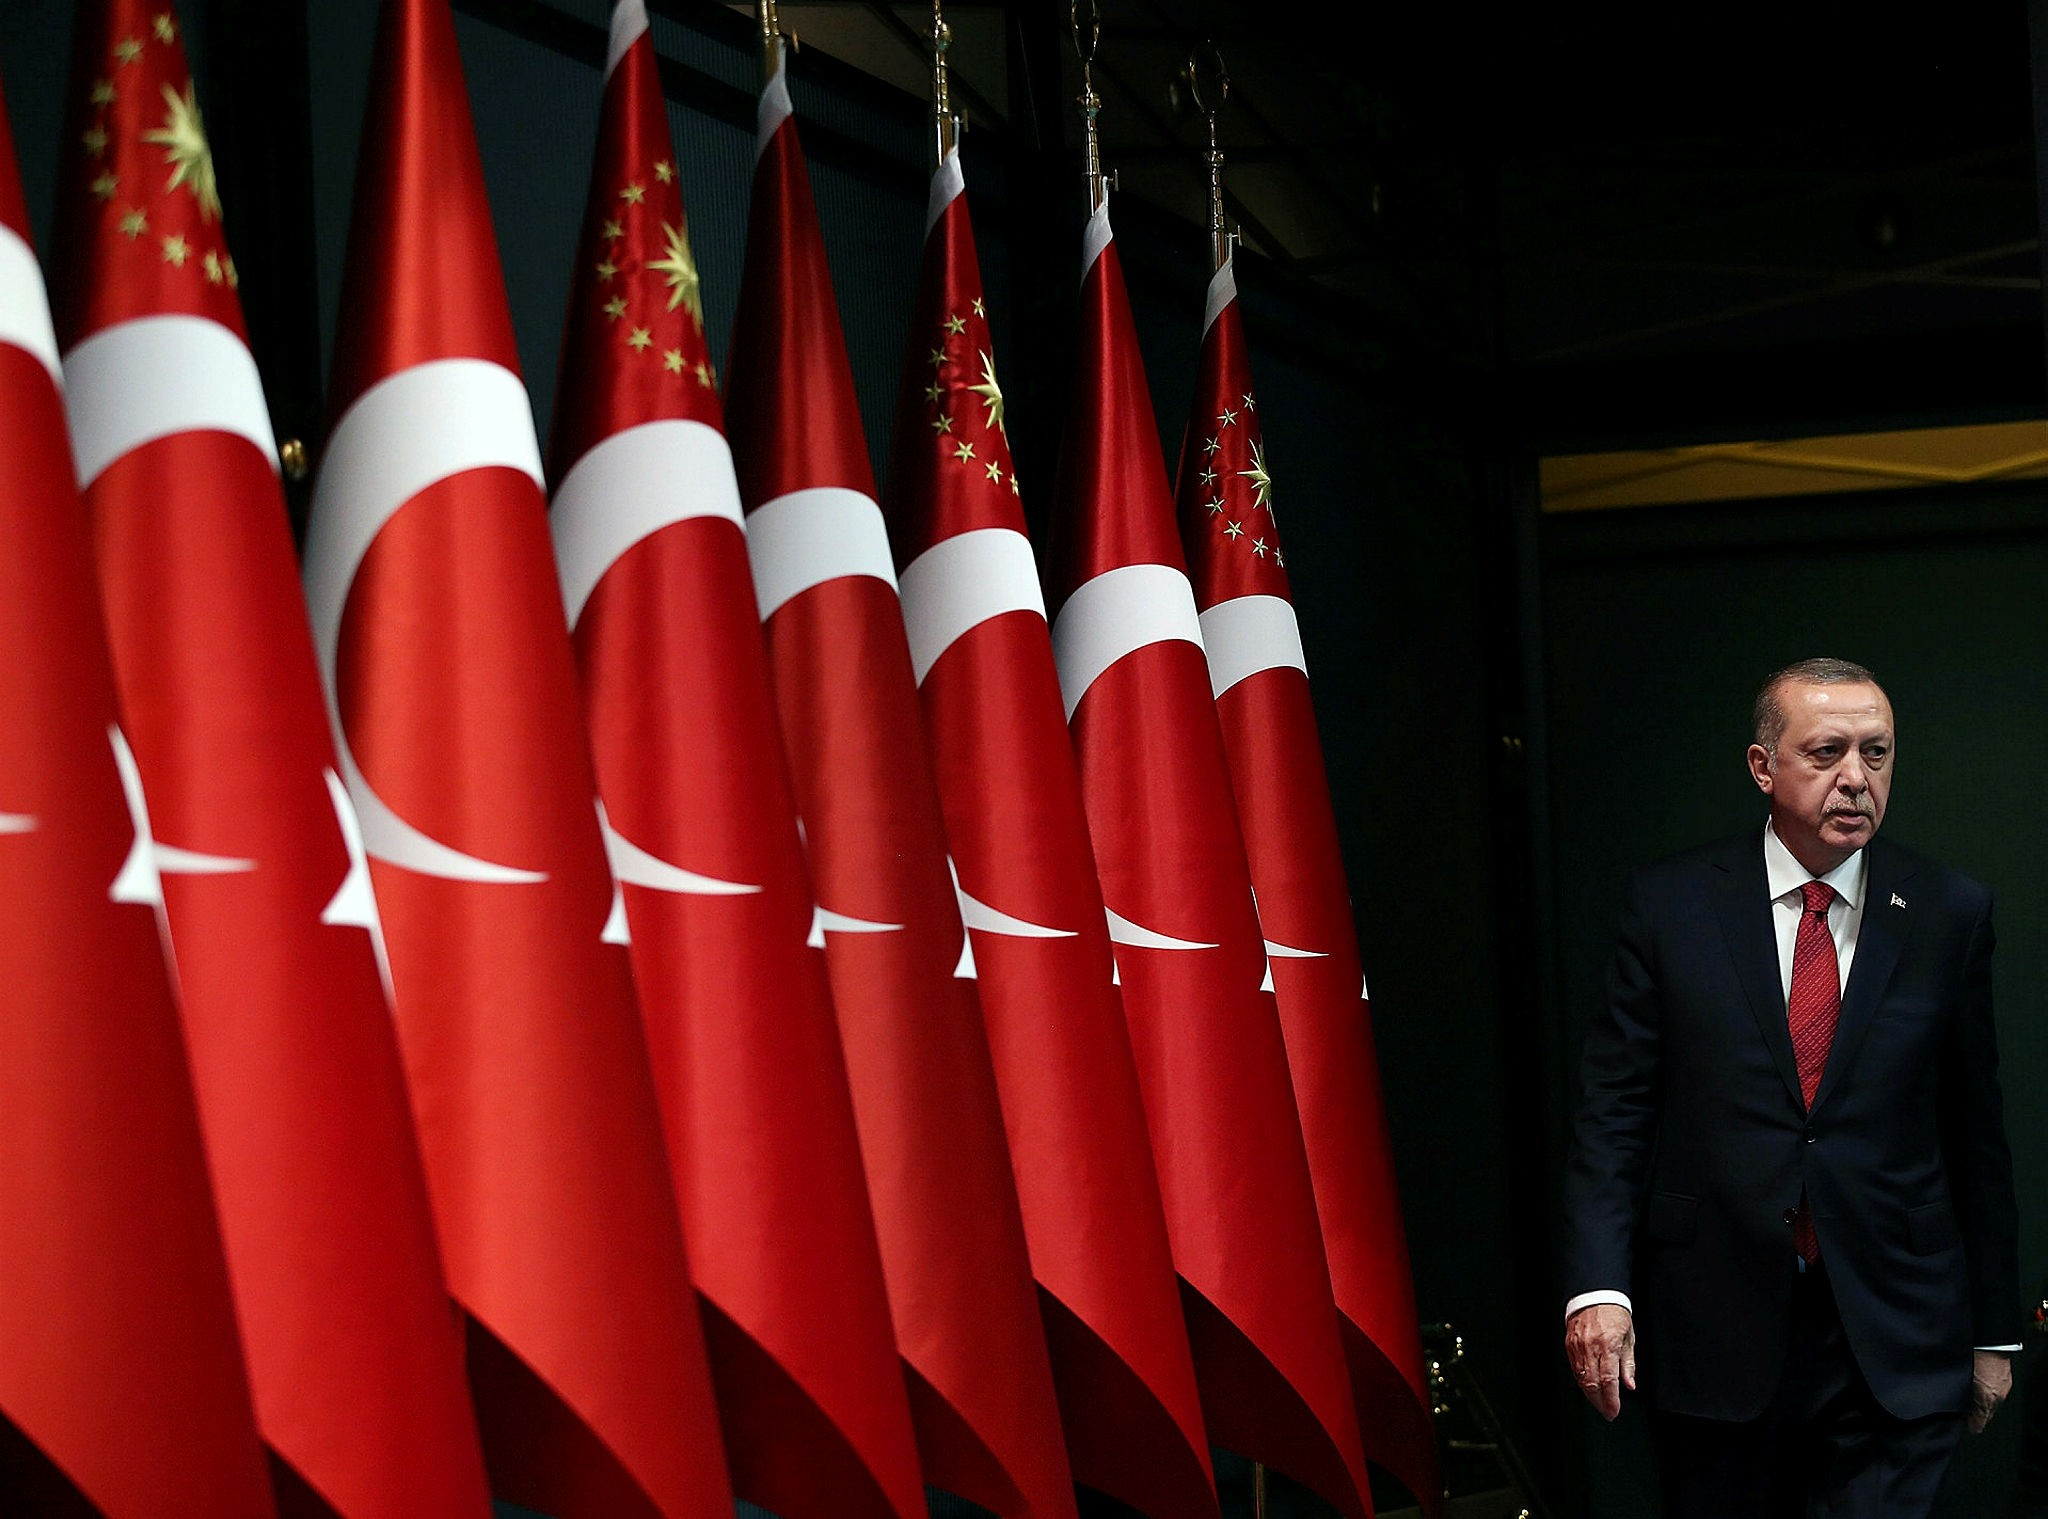 President Recep Tayyip Erdou011fan arrives at a news conference at the Presidential Complex in Ankara, Turkey, April 18, 2018. (Photo courtesy of Turkish Presidency)